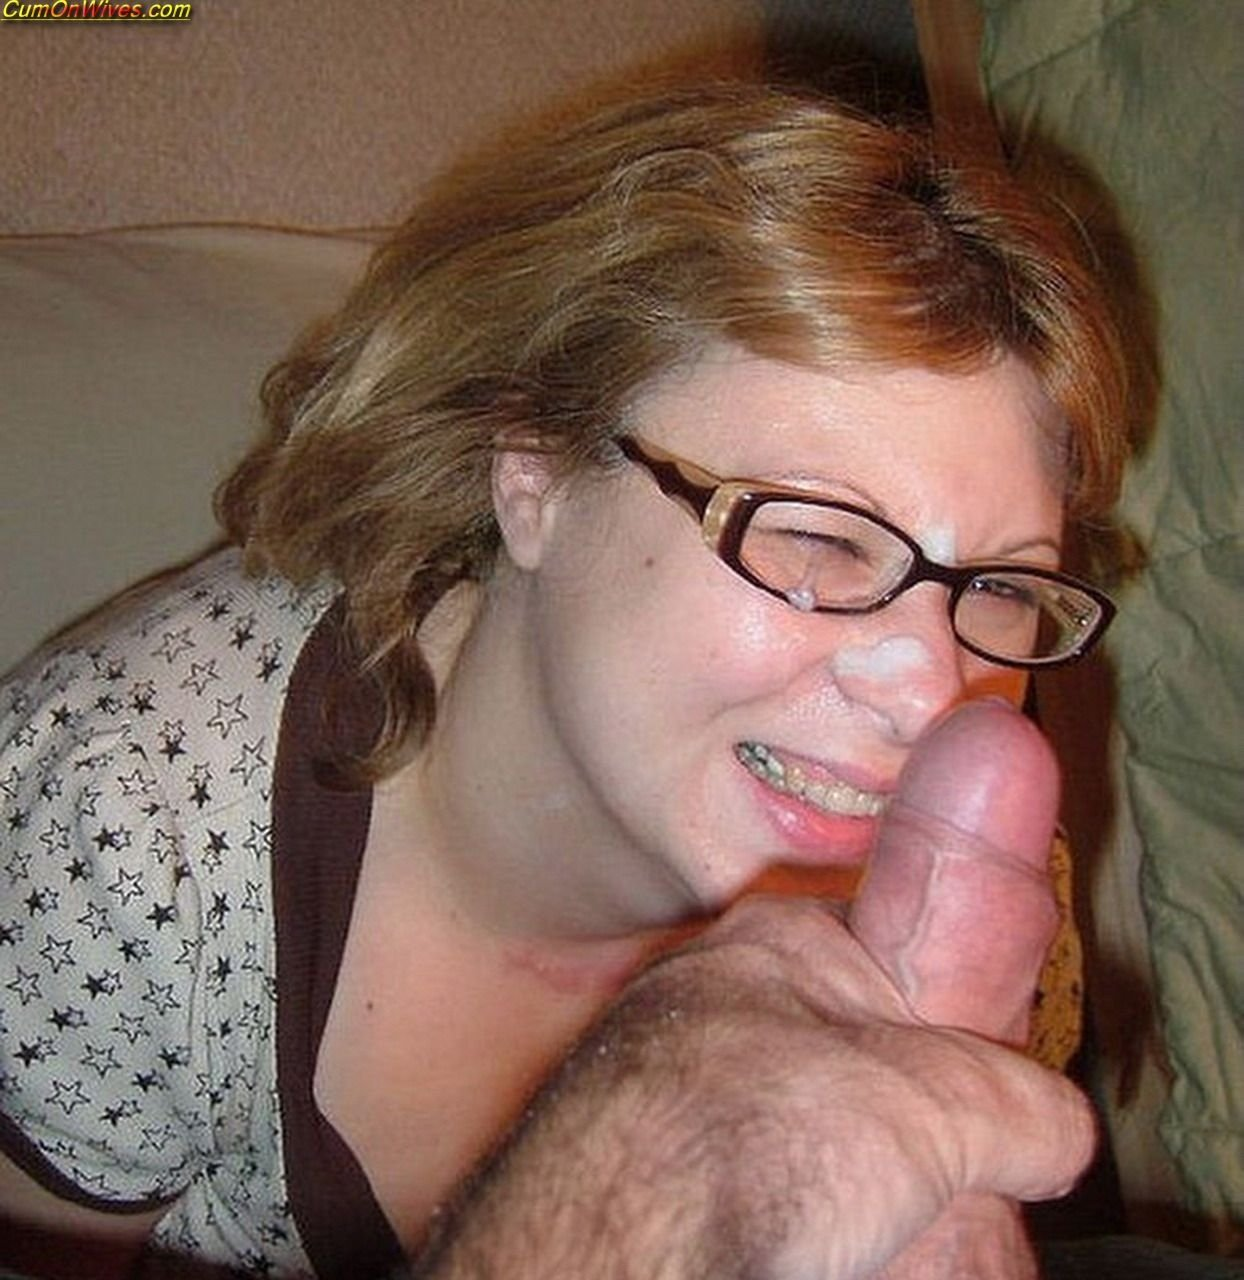 Amateur milf masturbation orgasm Tube full amateur